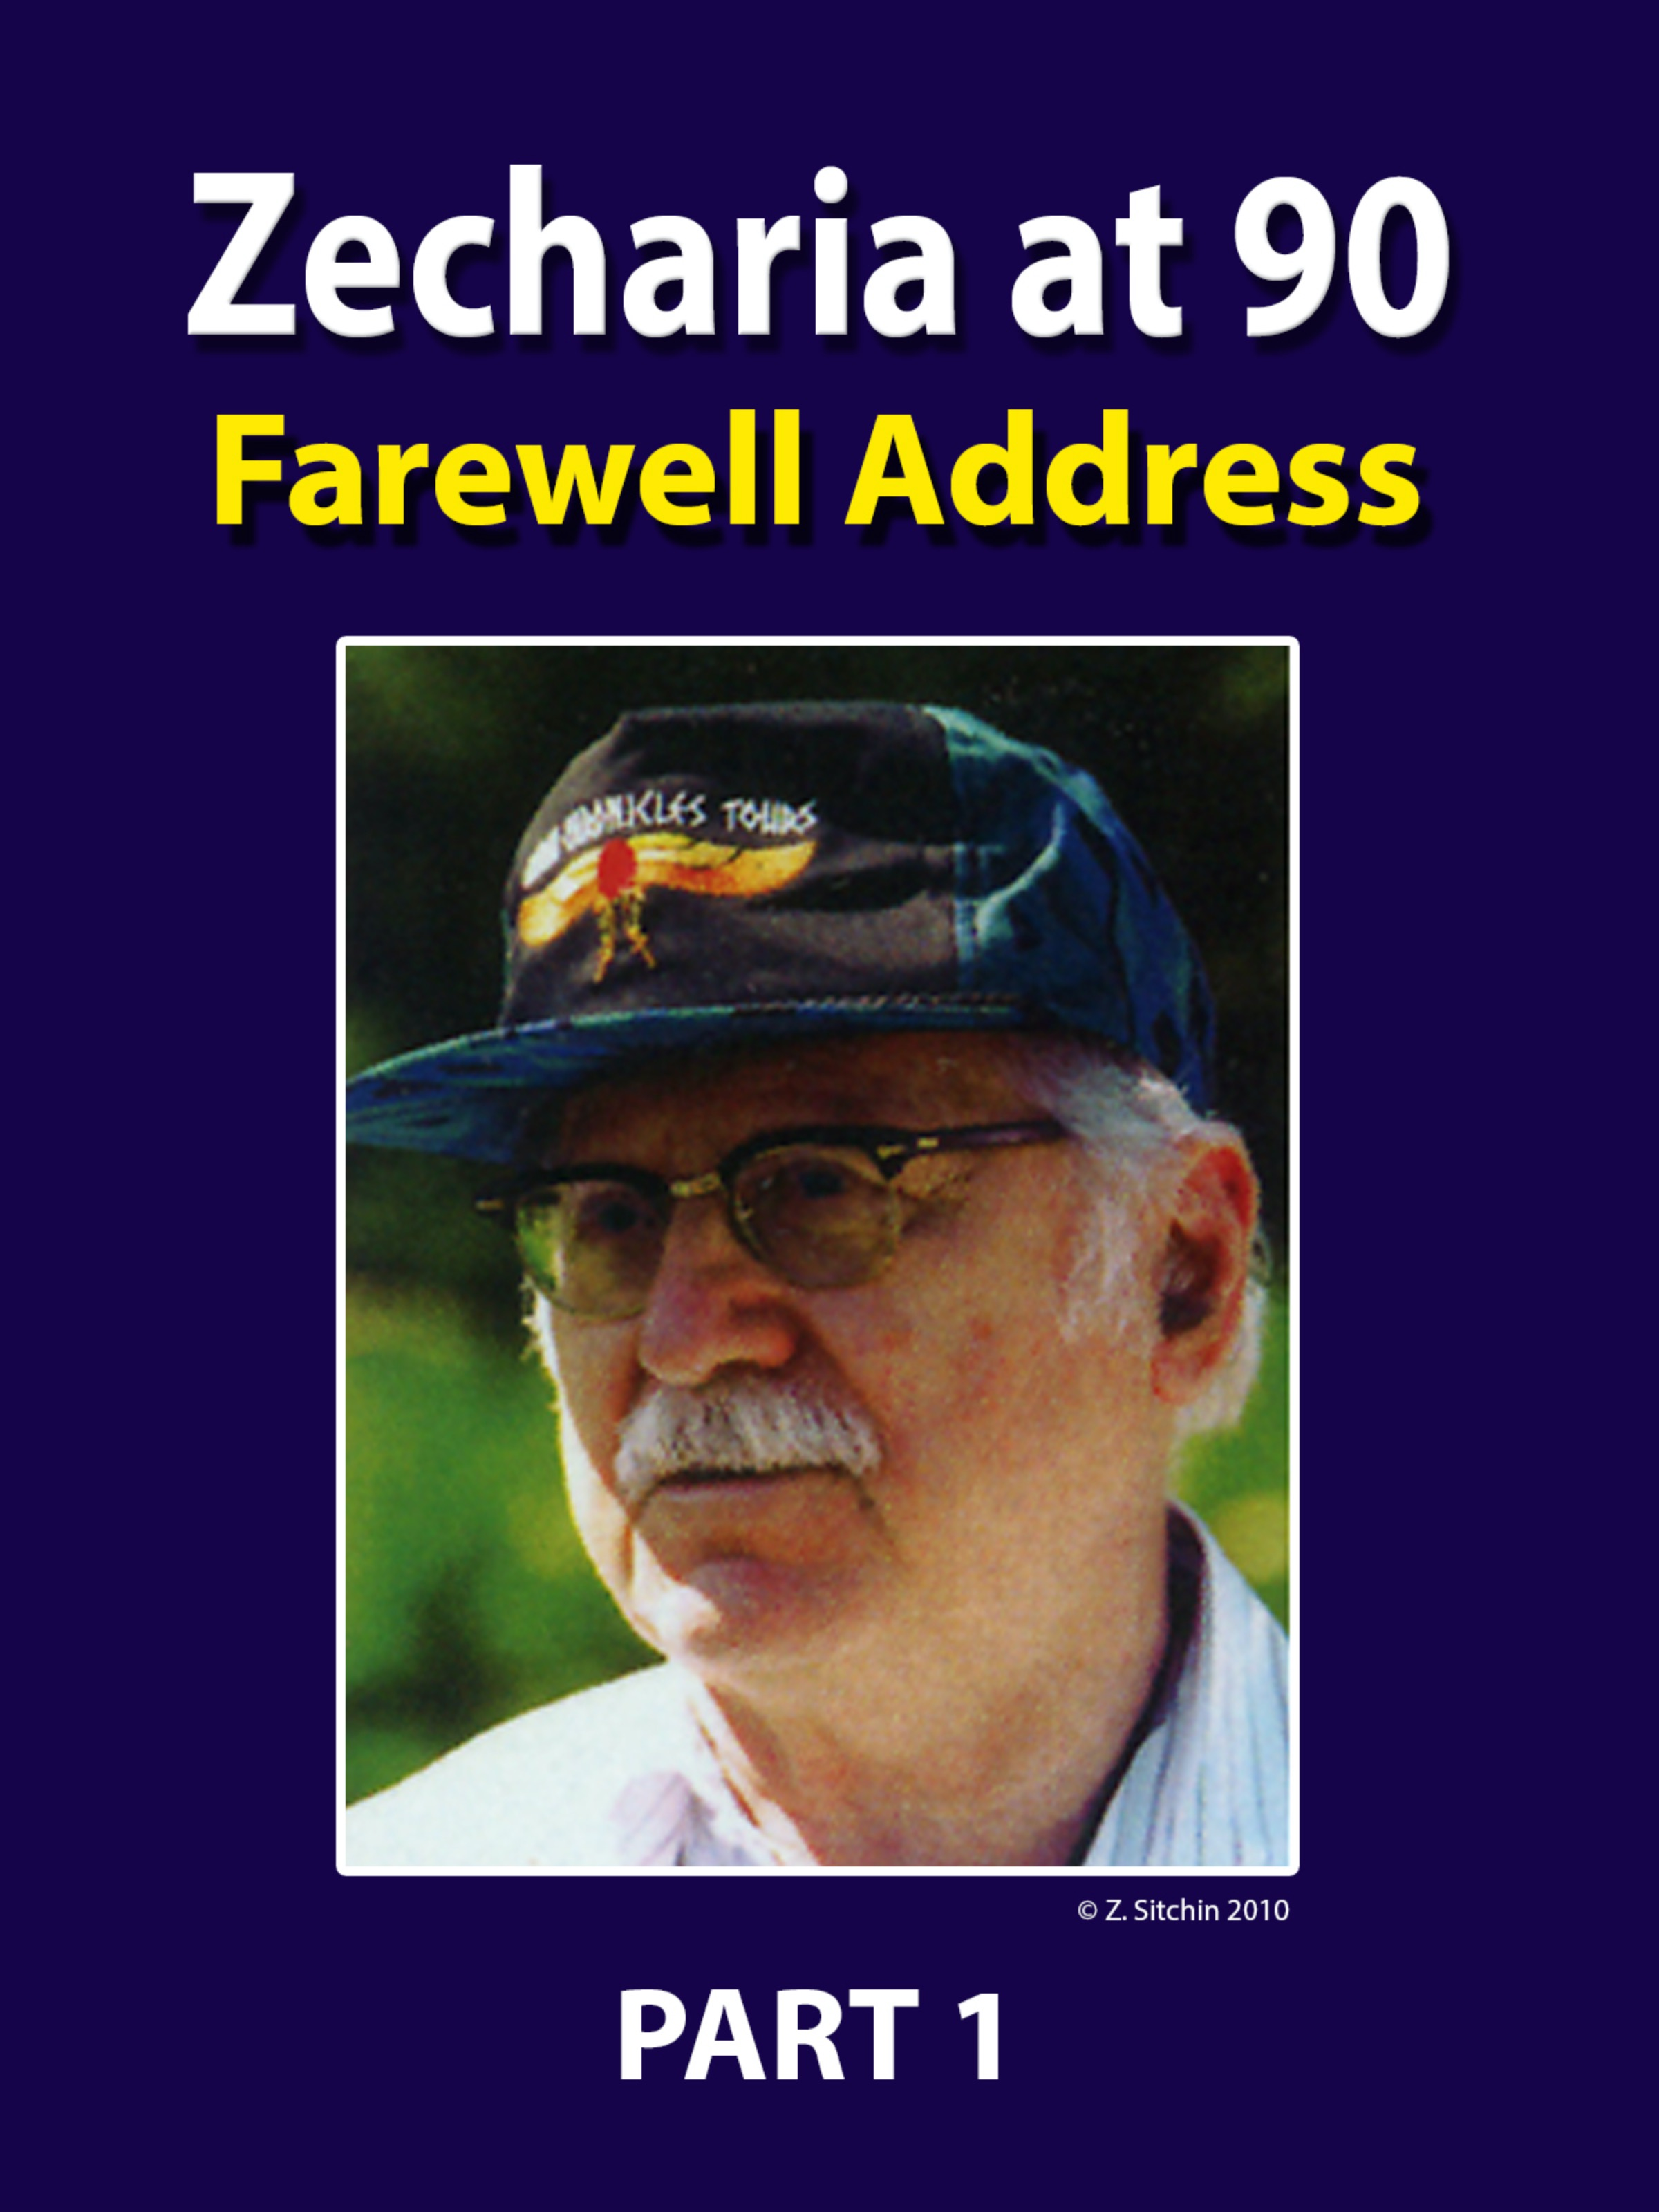 Zecharia at 90 - Farewell Address - Part 1